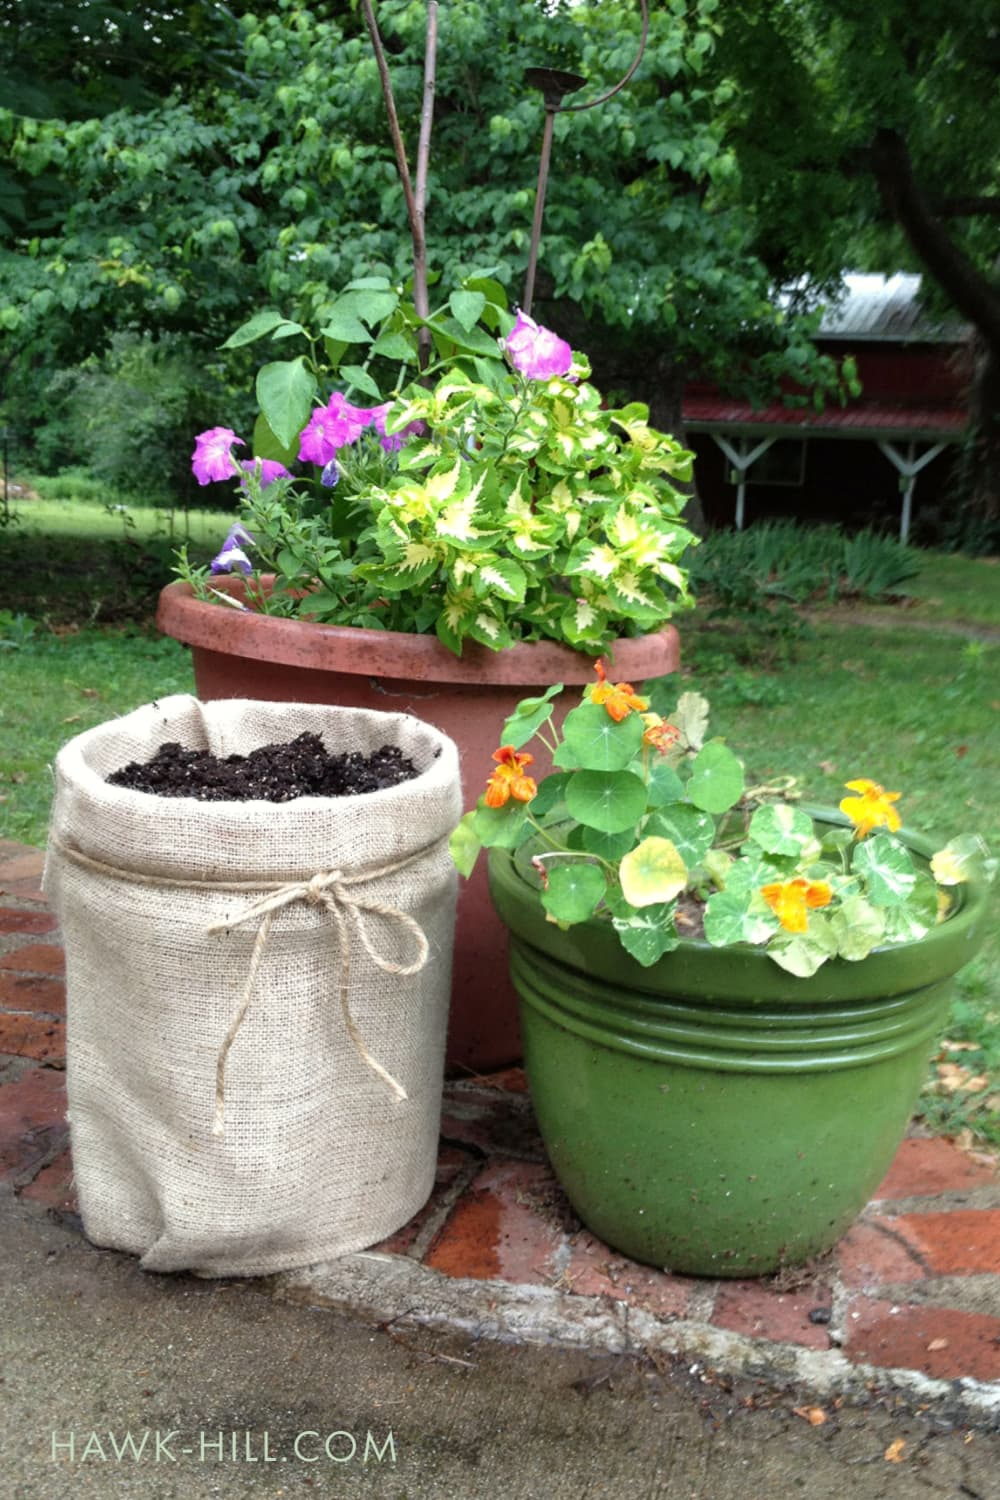 Turn A 5 Gallon Bucket Into A Burlap Planter For Pennies Hawk Hill